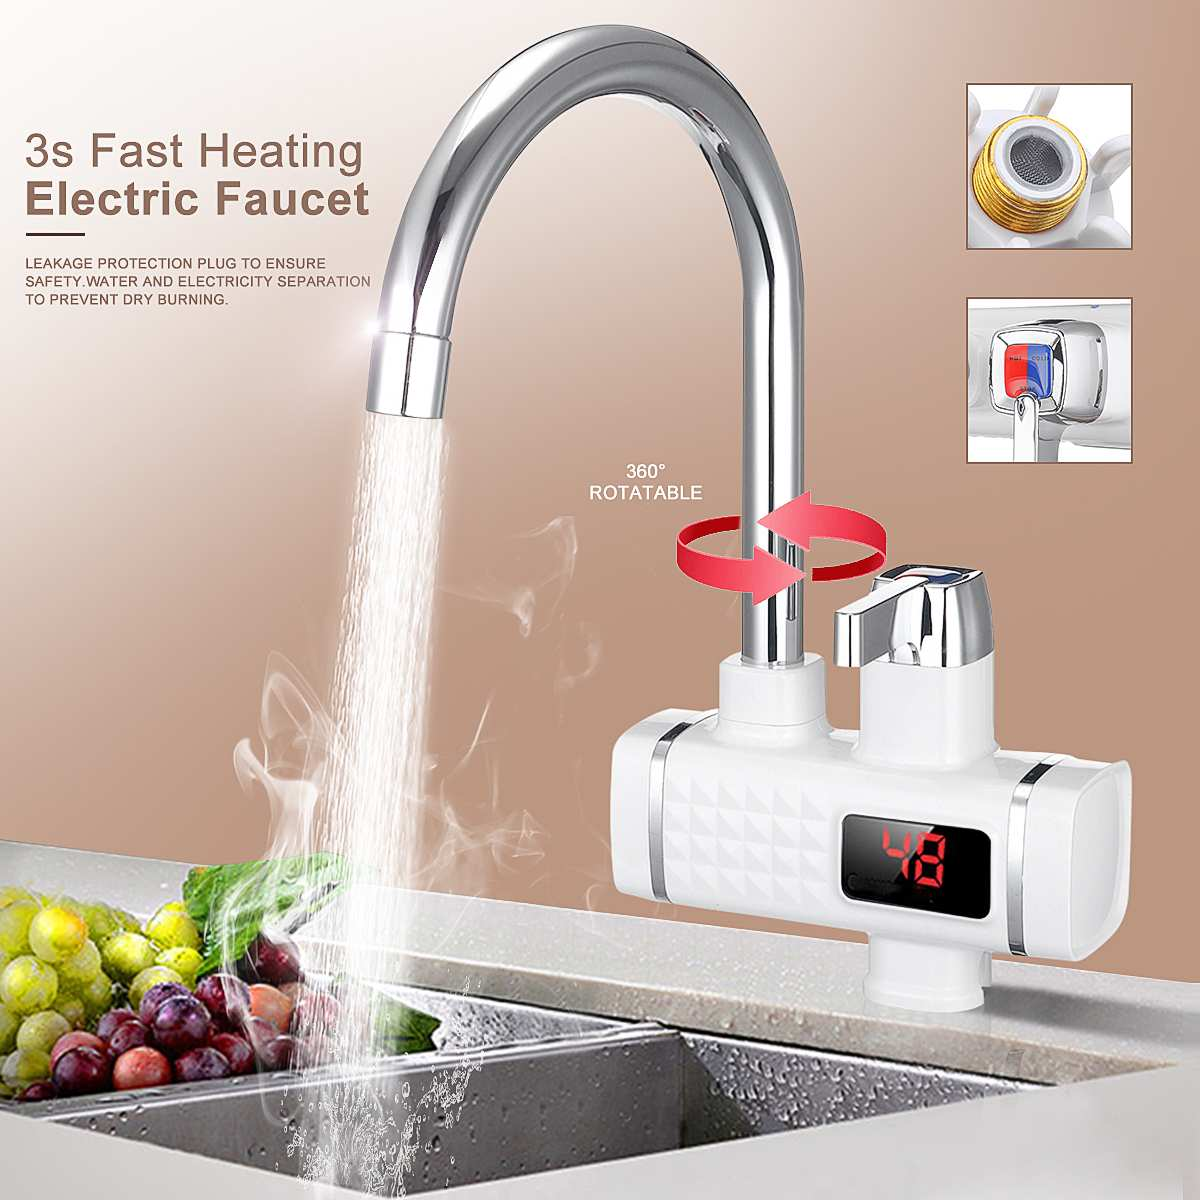 220V 3000W Electric Faucet Tap Hot Water Heater Instant Digital Display Home Bathroom Kitchen Hot Water Faucet Heating Heater